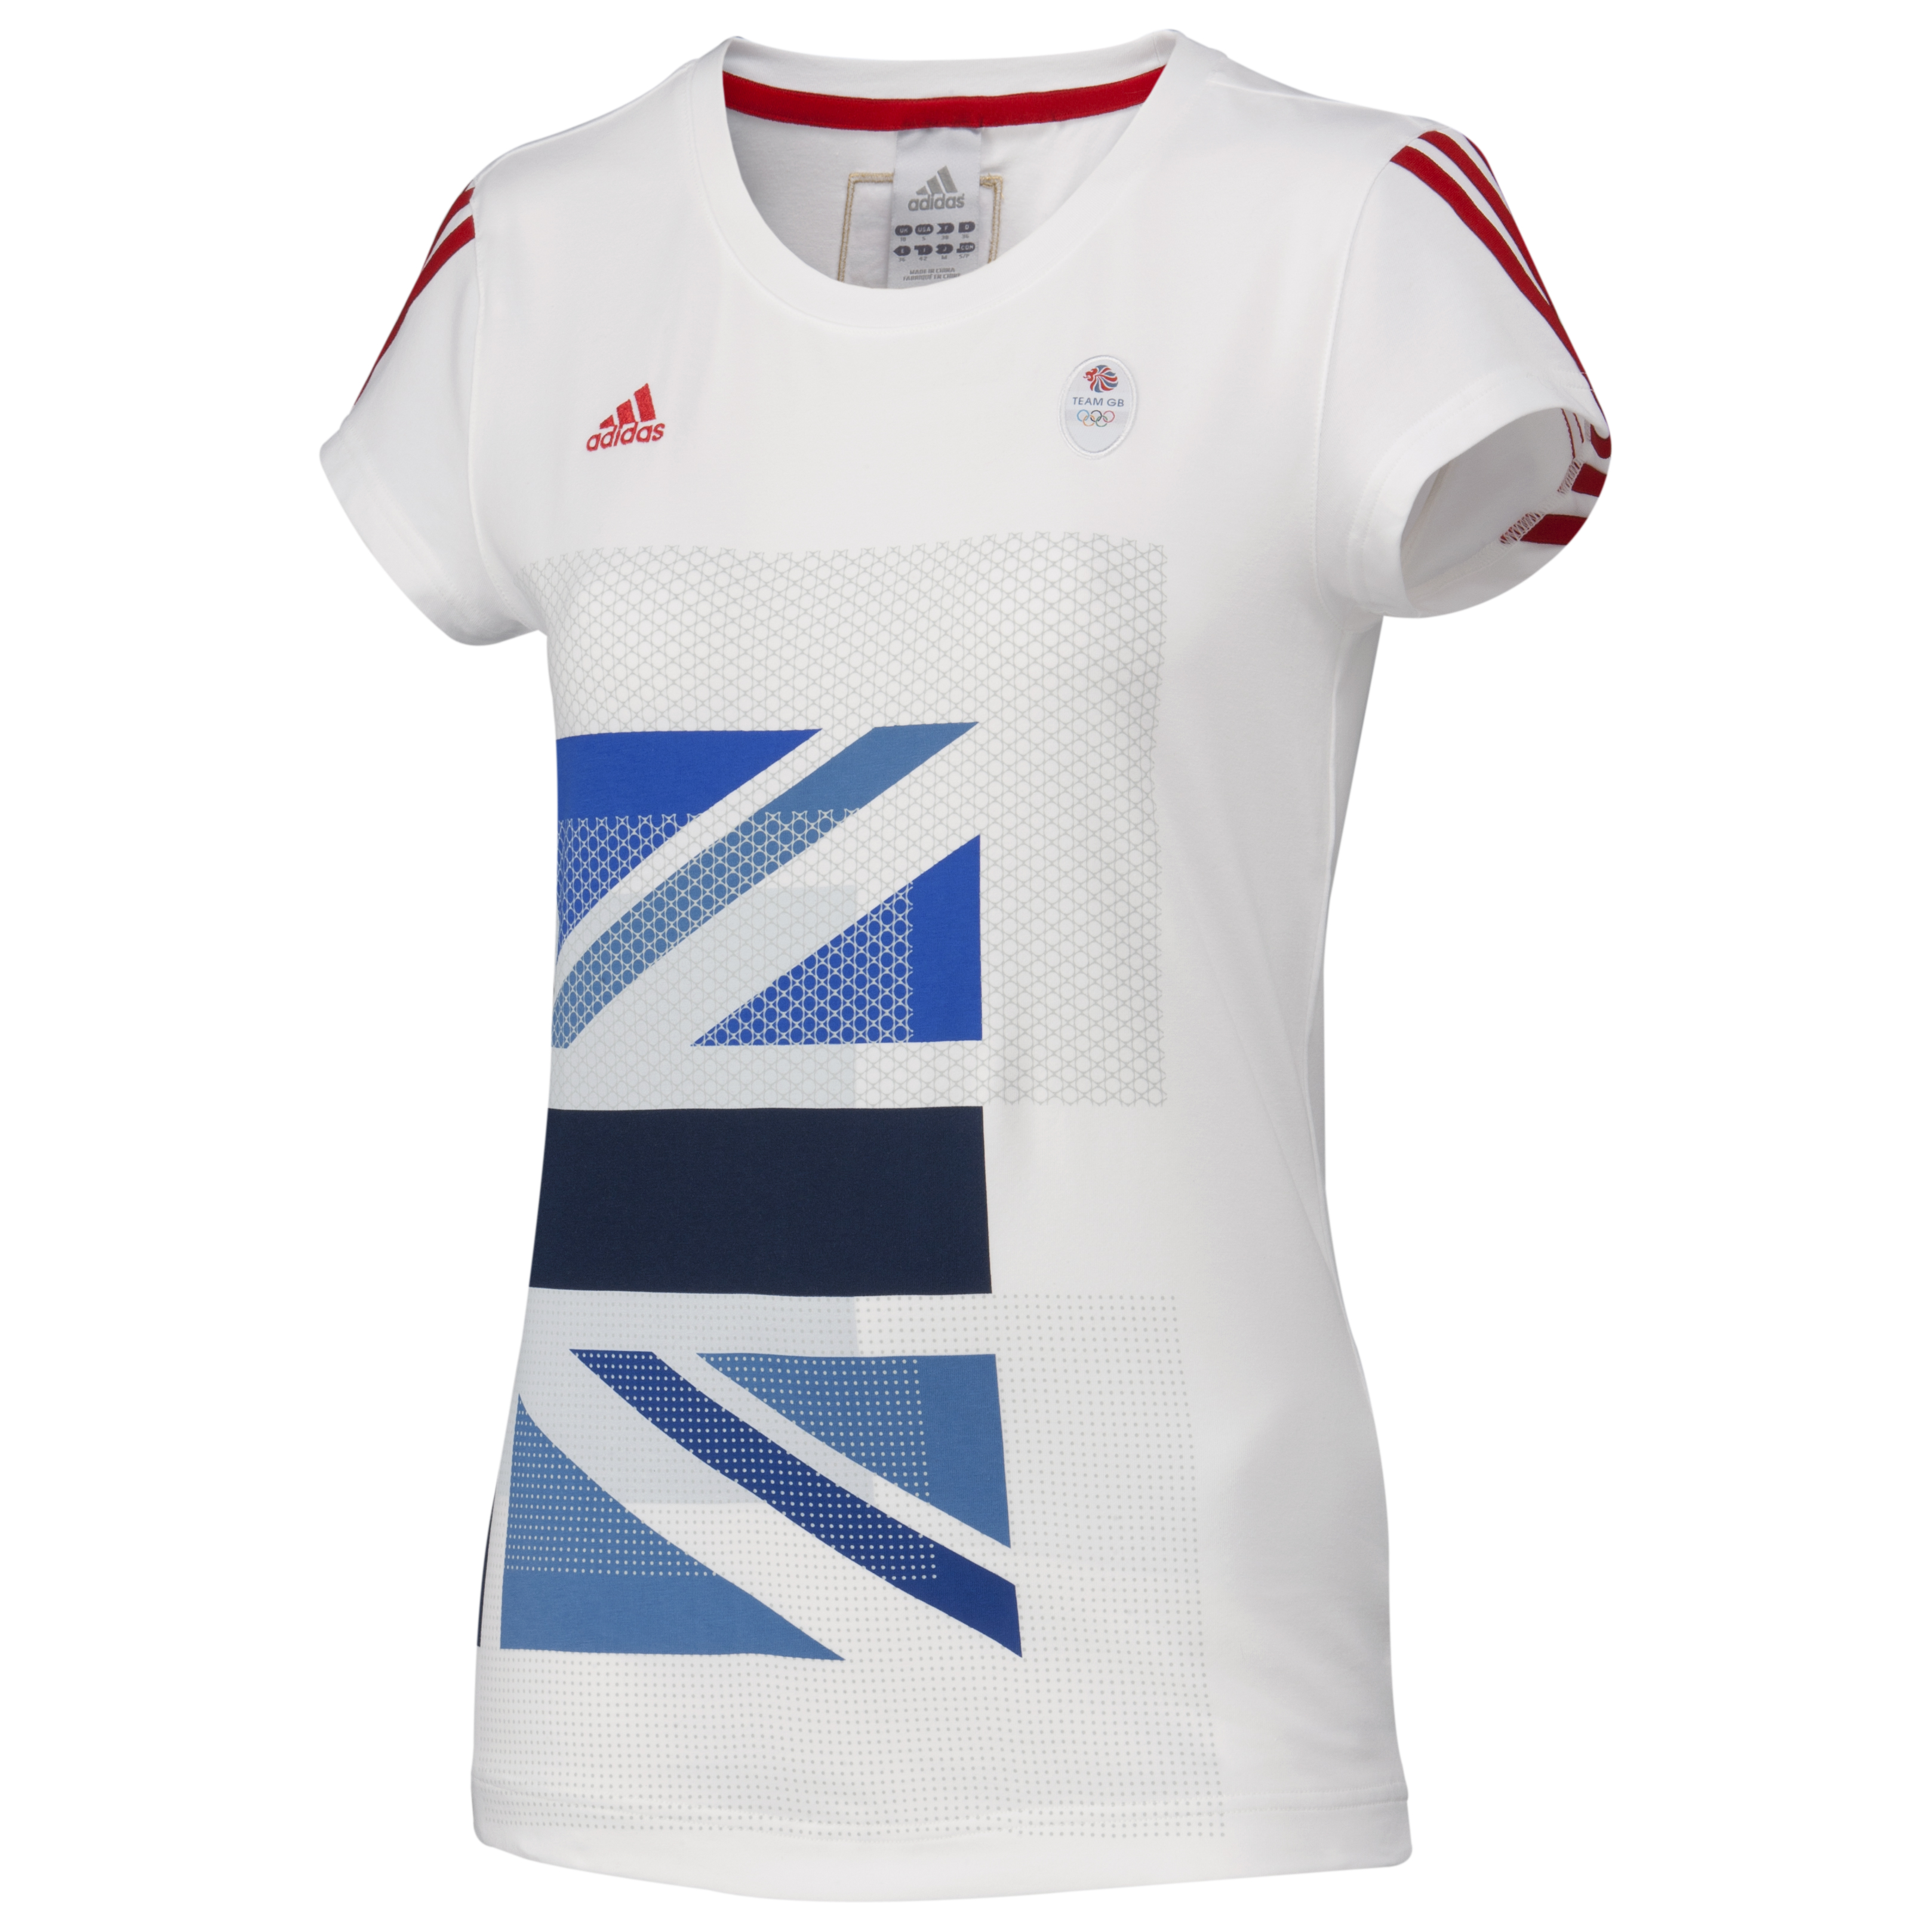 adidas Team GB Graphic T-Shirt - White - Women